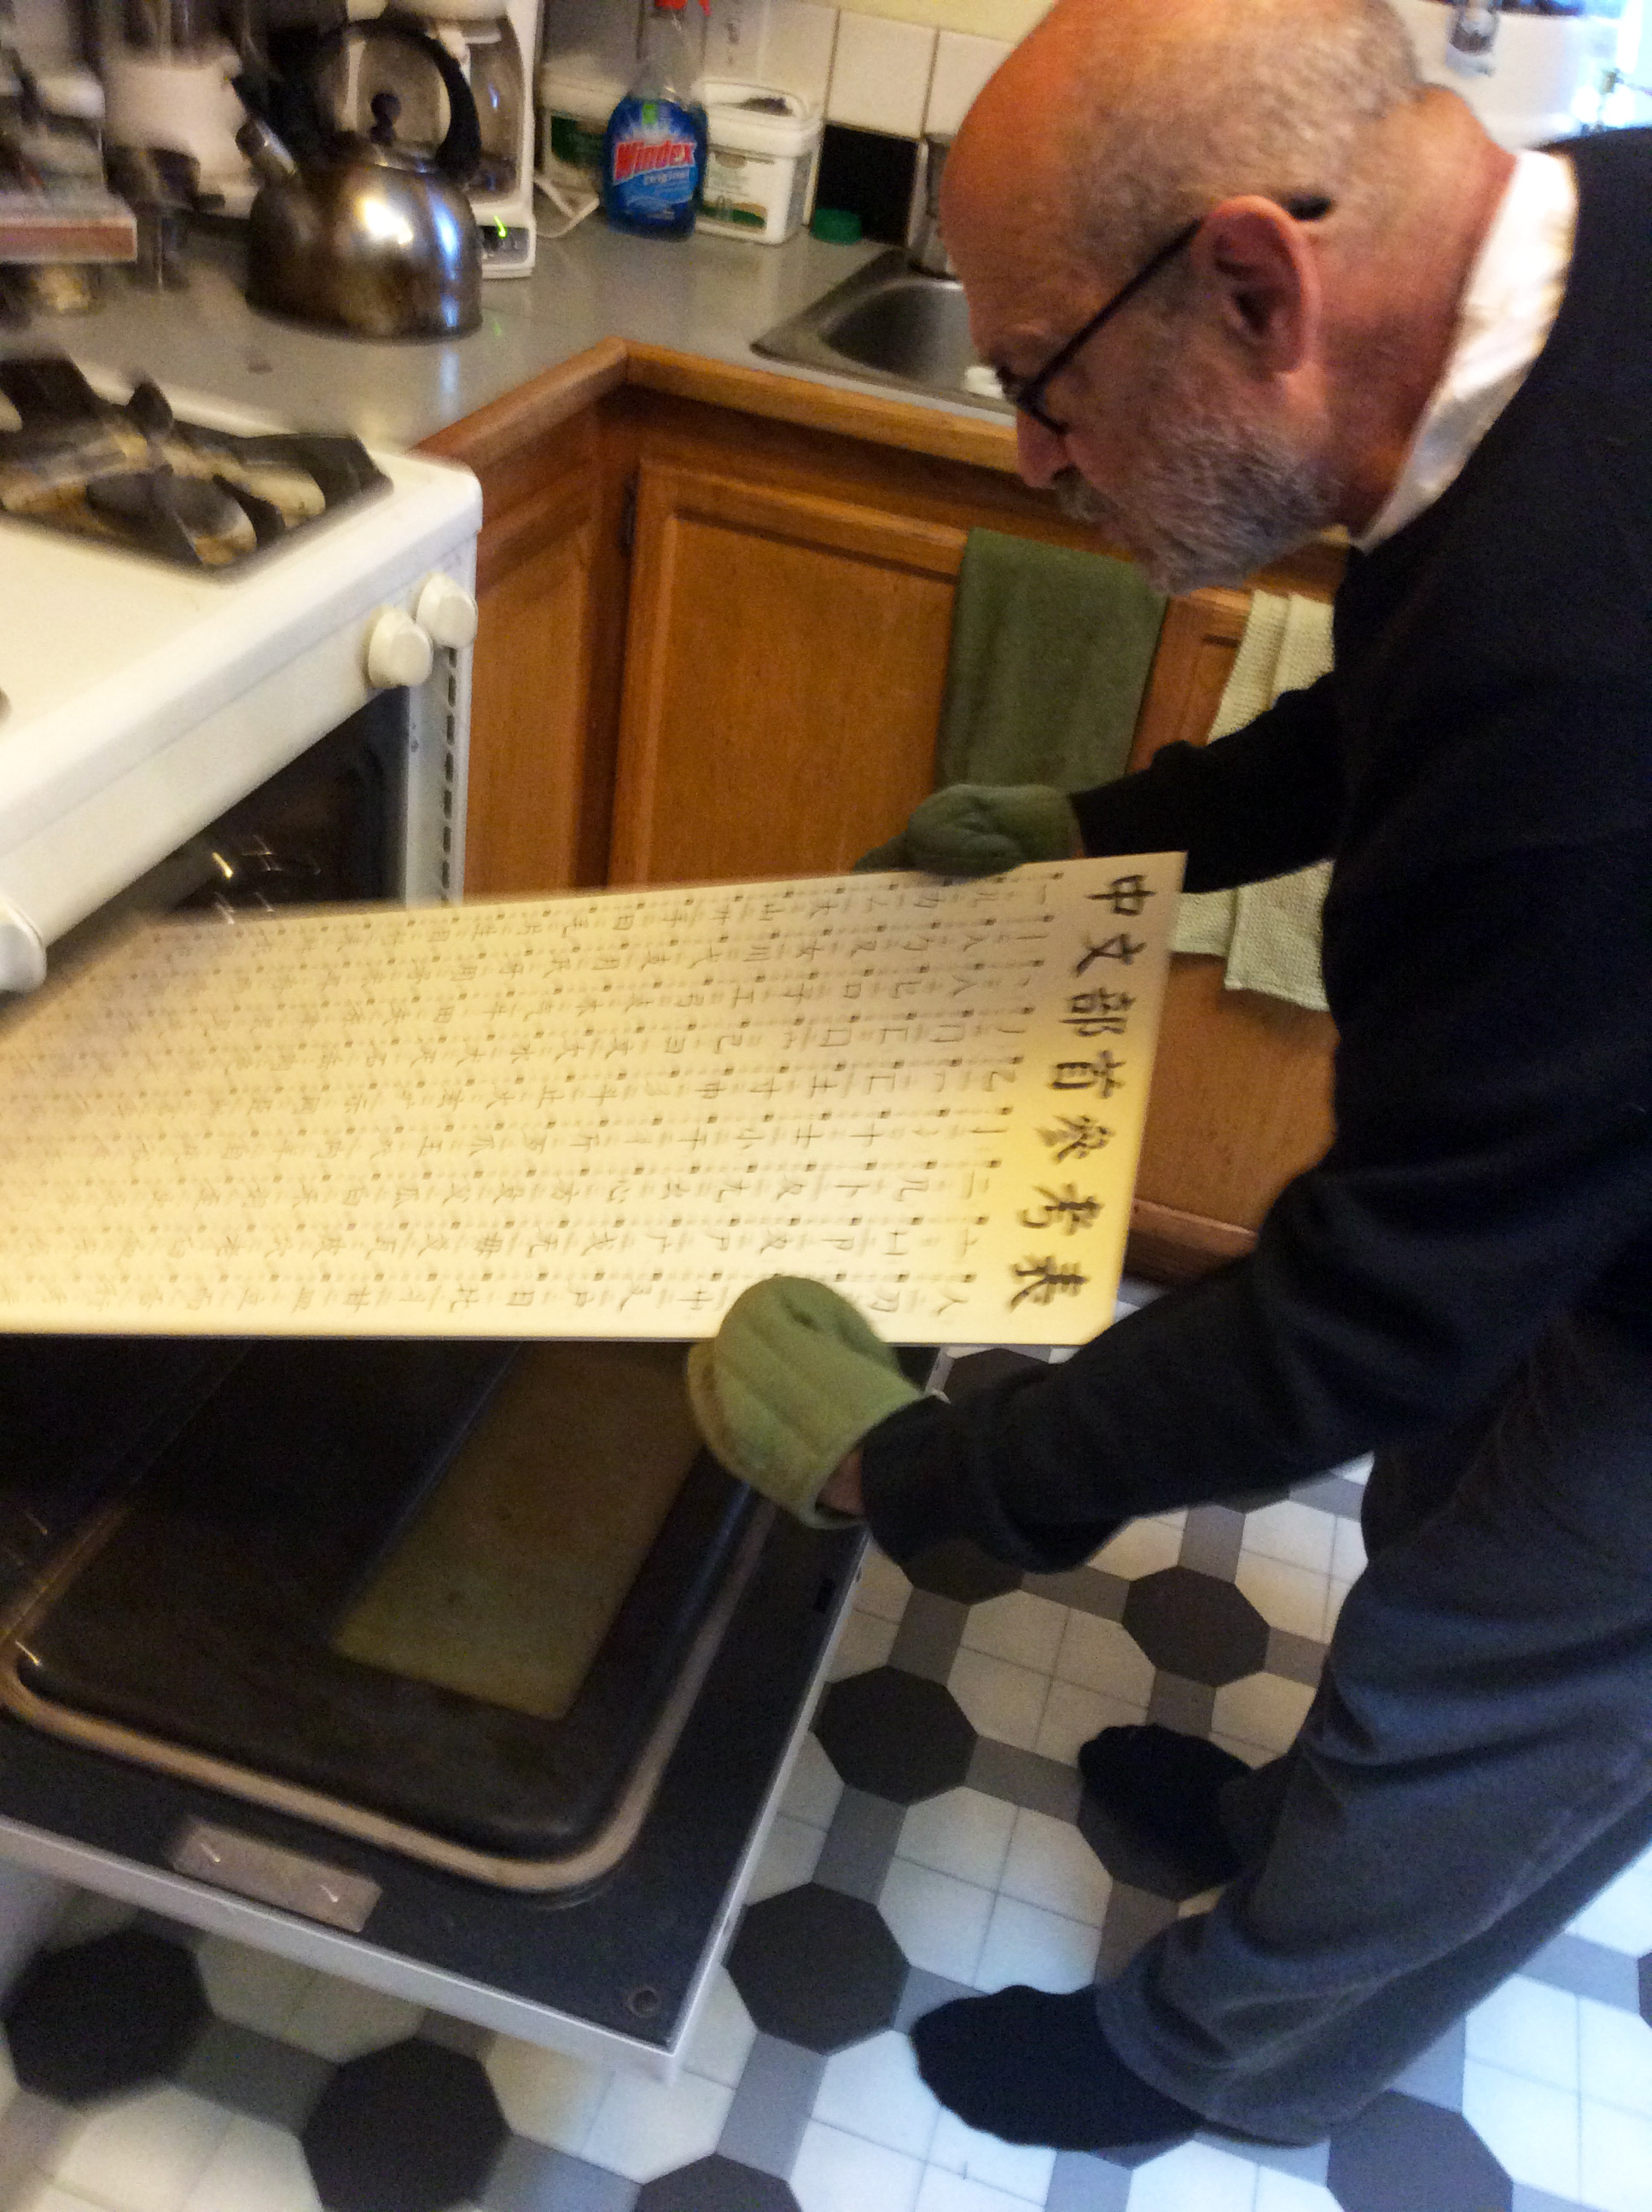 Cooking-up-a-Storm-in-Chinese.jpg